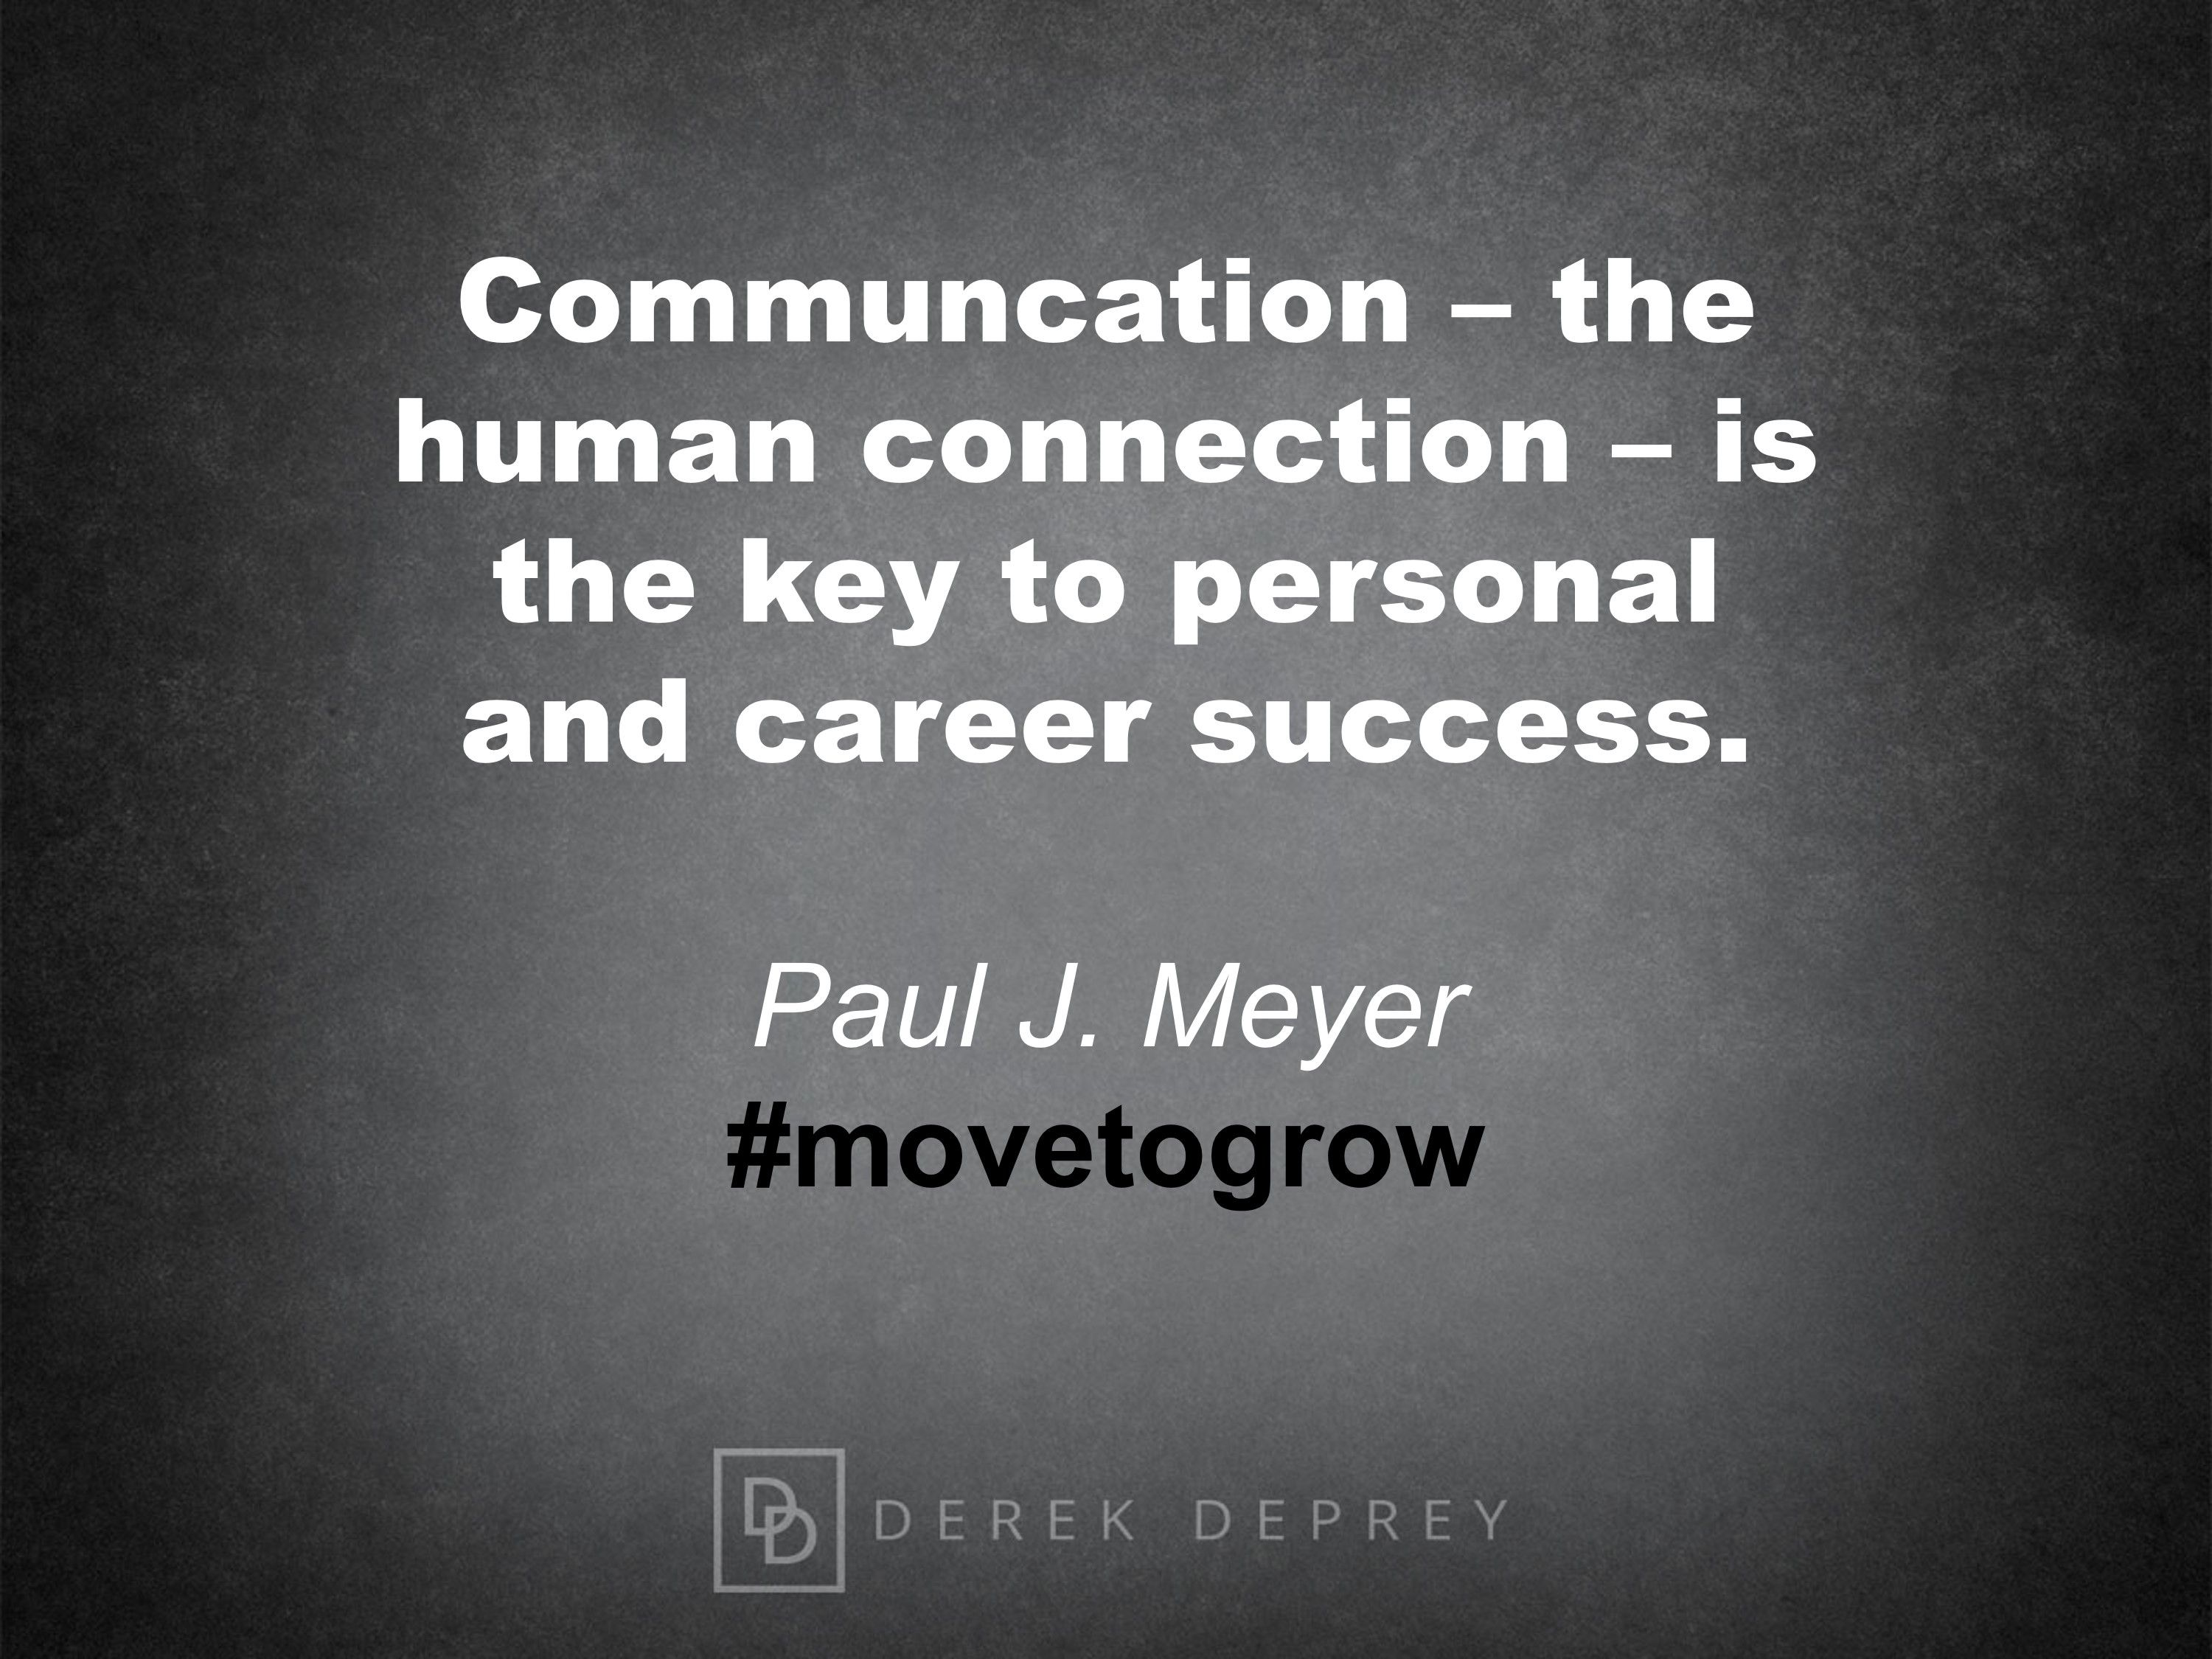 Communication -- the human connection -- is the key to personal and career success. Paul J. Meyer #movetoconnect